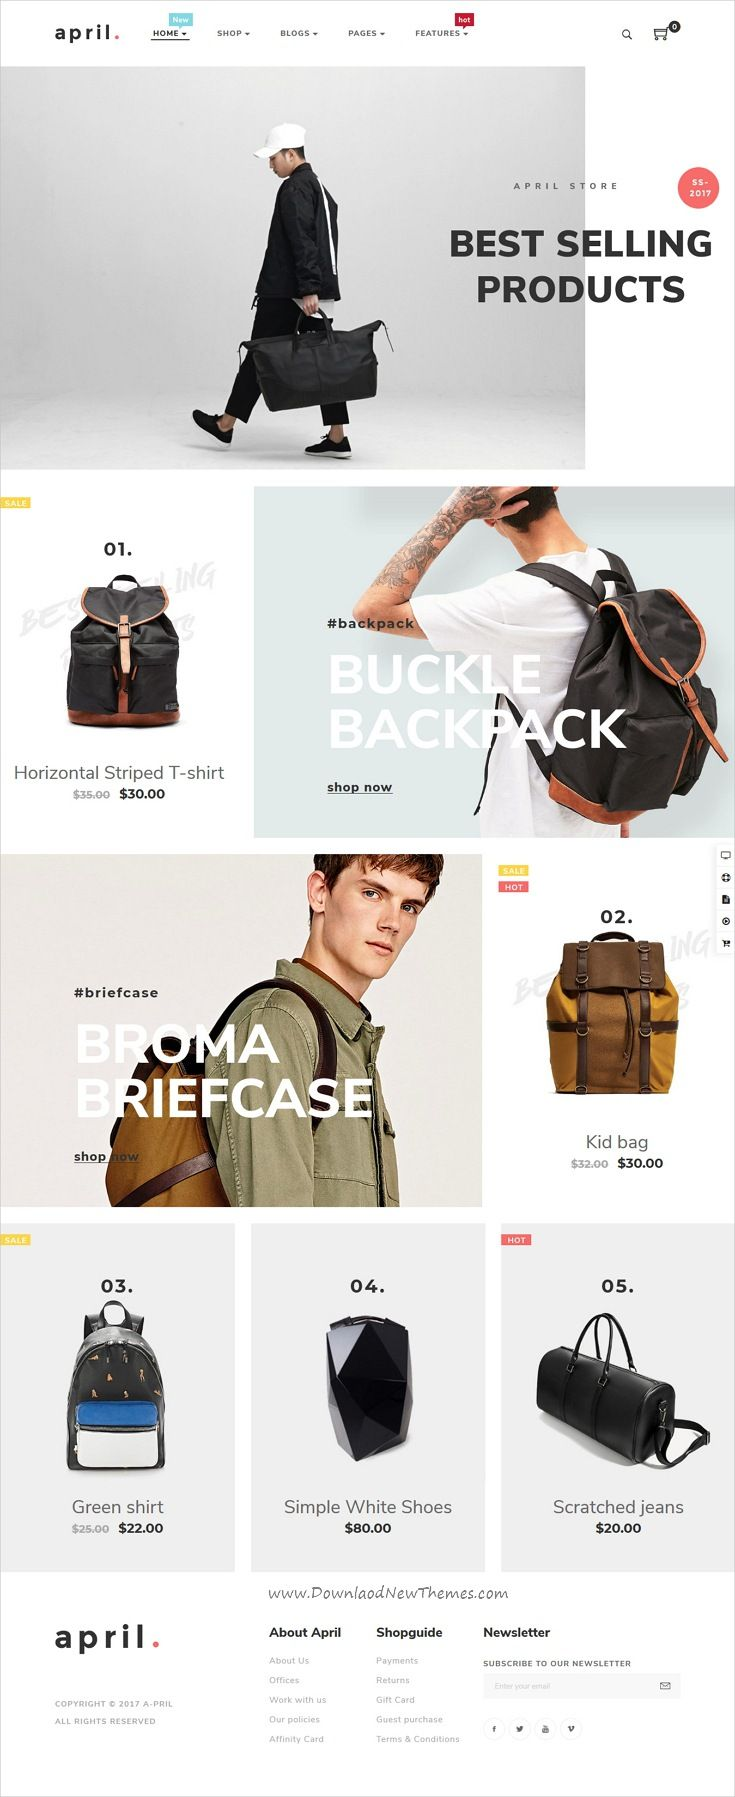 April is clean, stylish and modern design responsive WooCommerce WordPress theme for stunning bag store eCommerce website with 10+ niche homepage layouts download now..